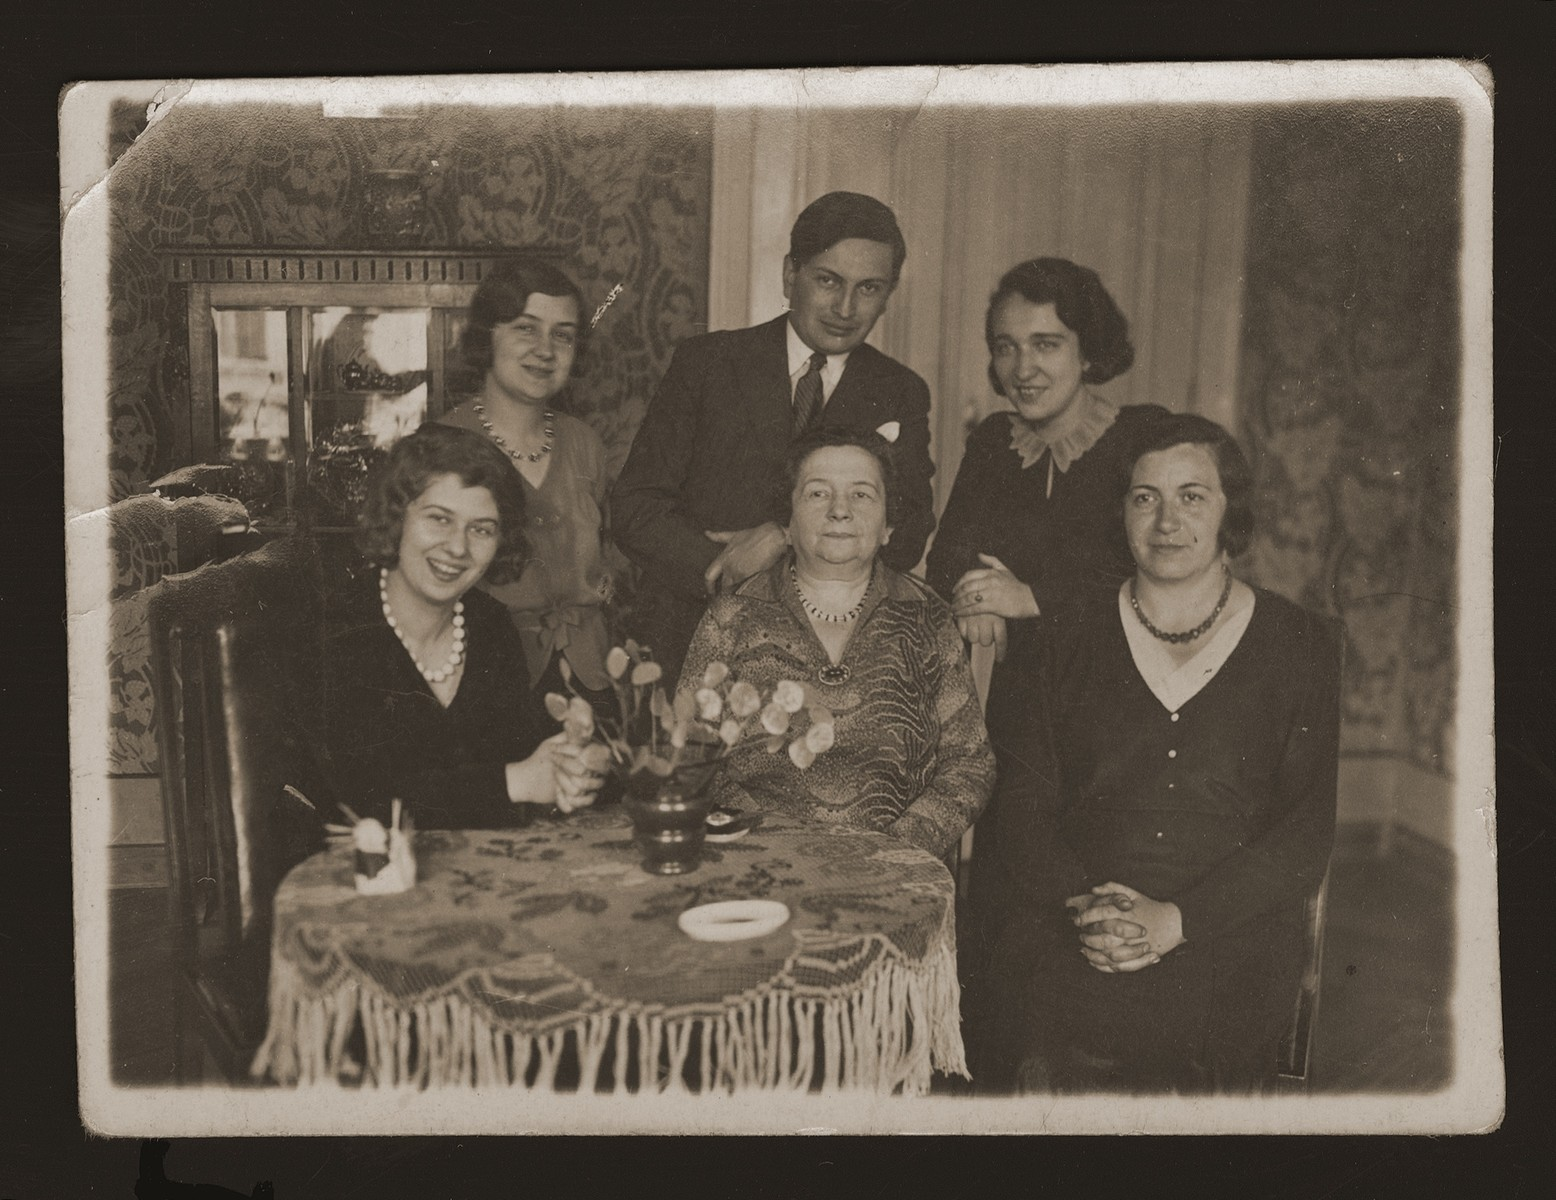 Prewar family portrait of the Erlich family in their home in Katowice.